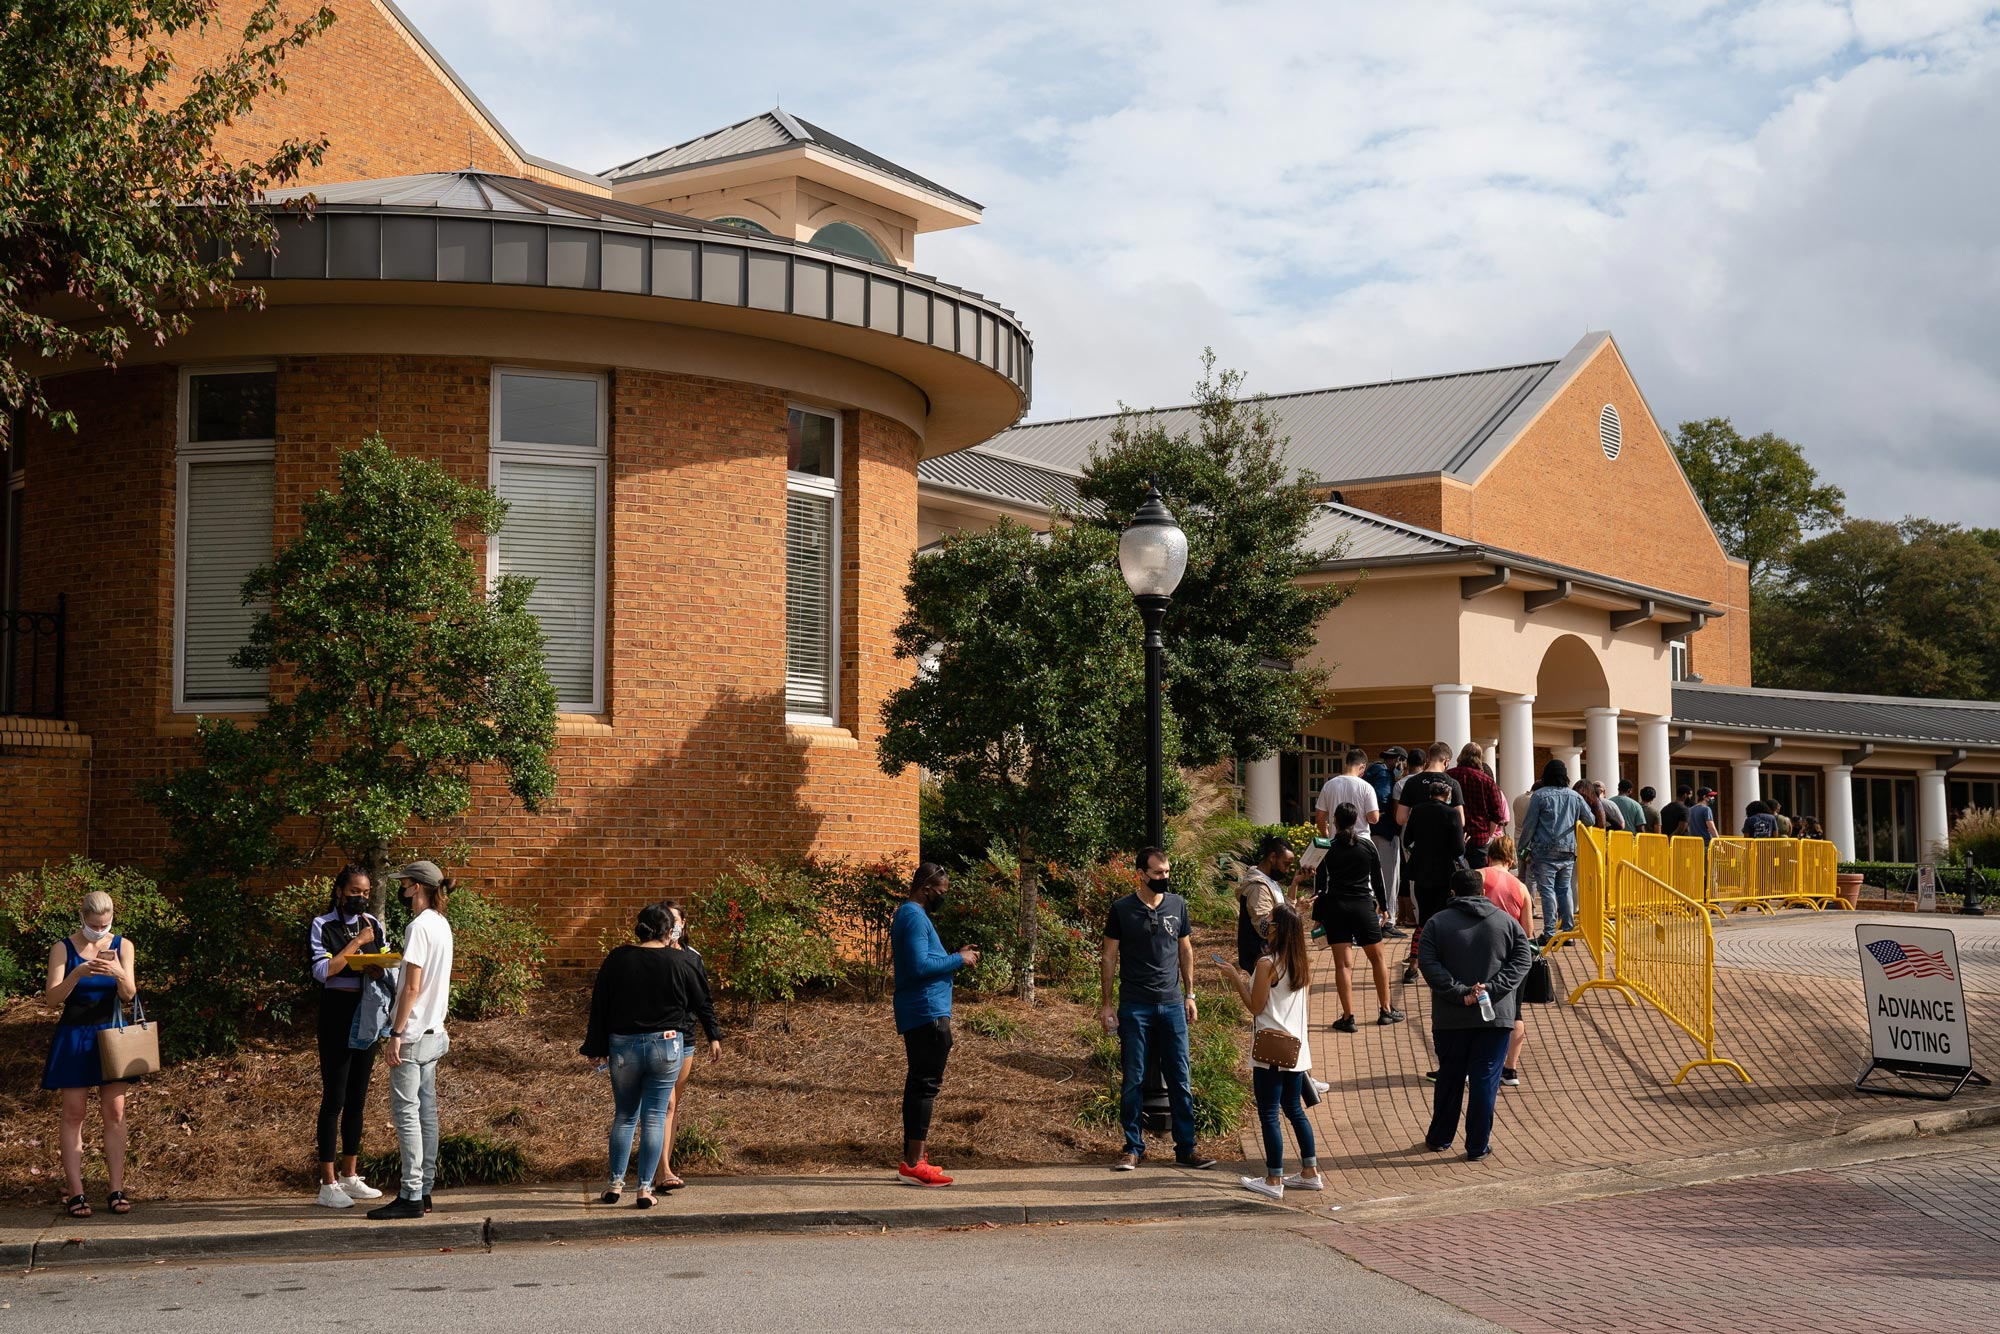 People wait in line to cast their ballots at Smyrna Community Center on October 24 in Smyrna, Georgia.